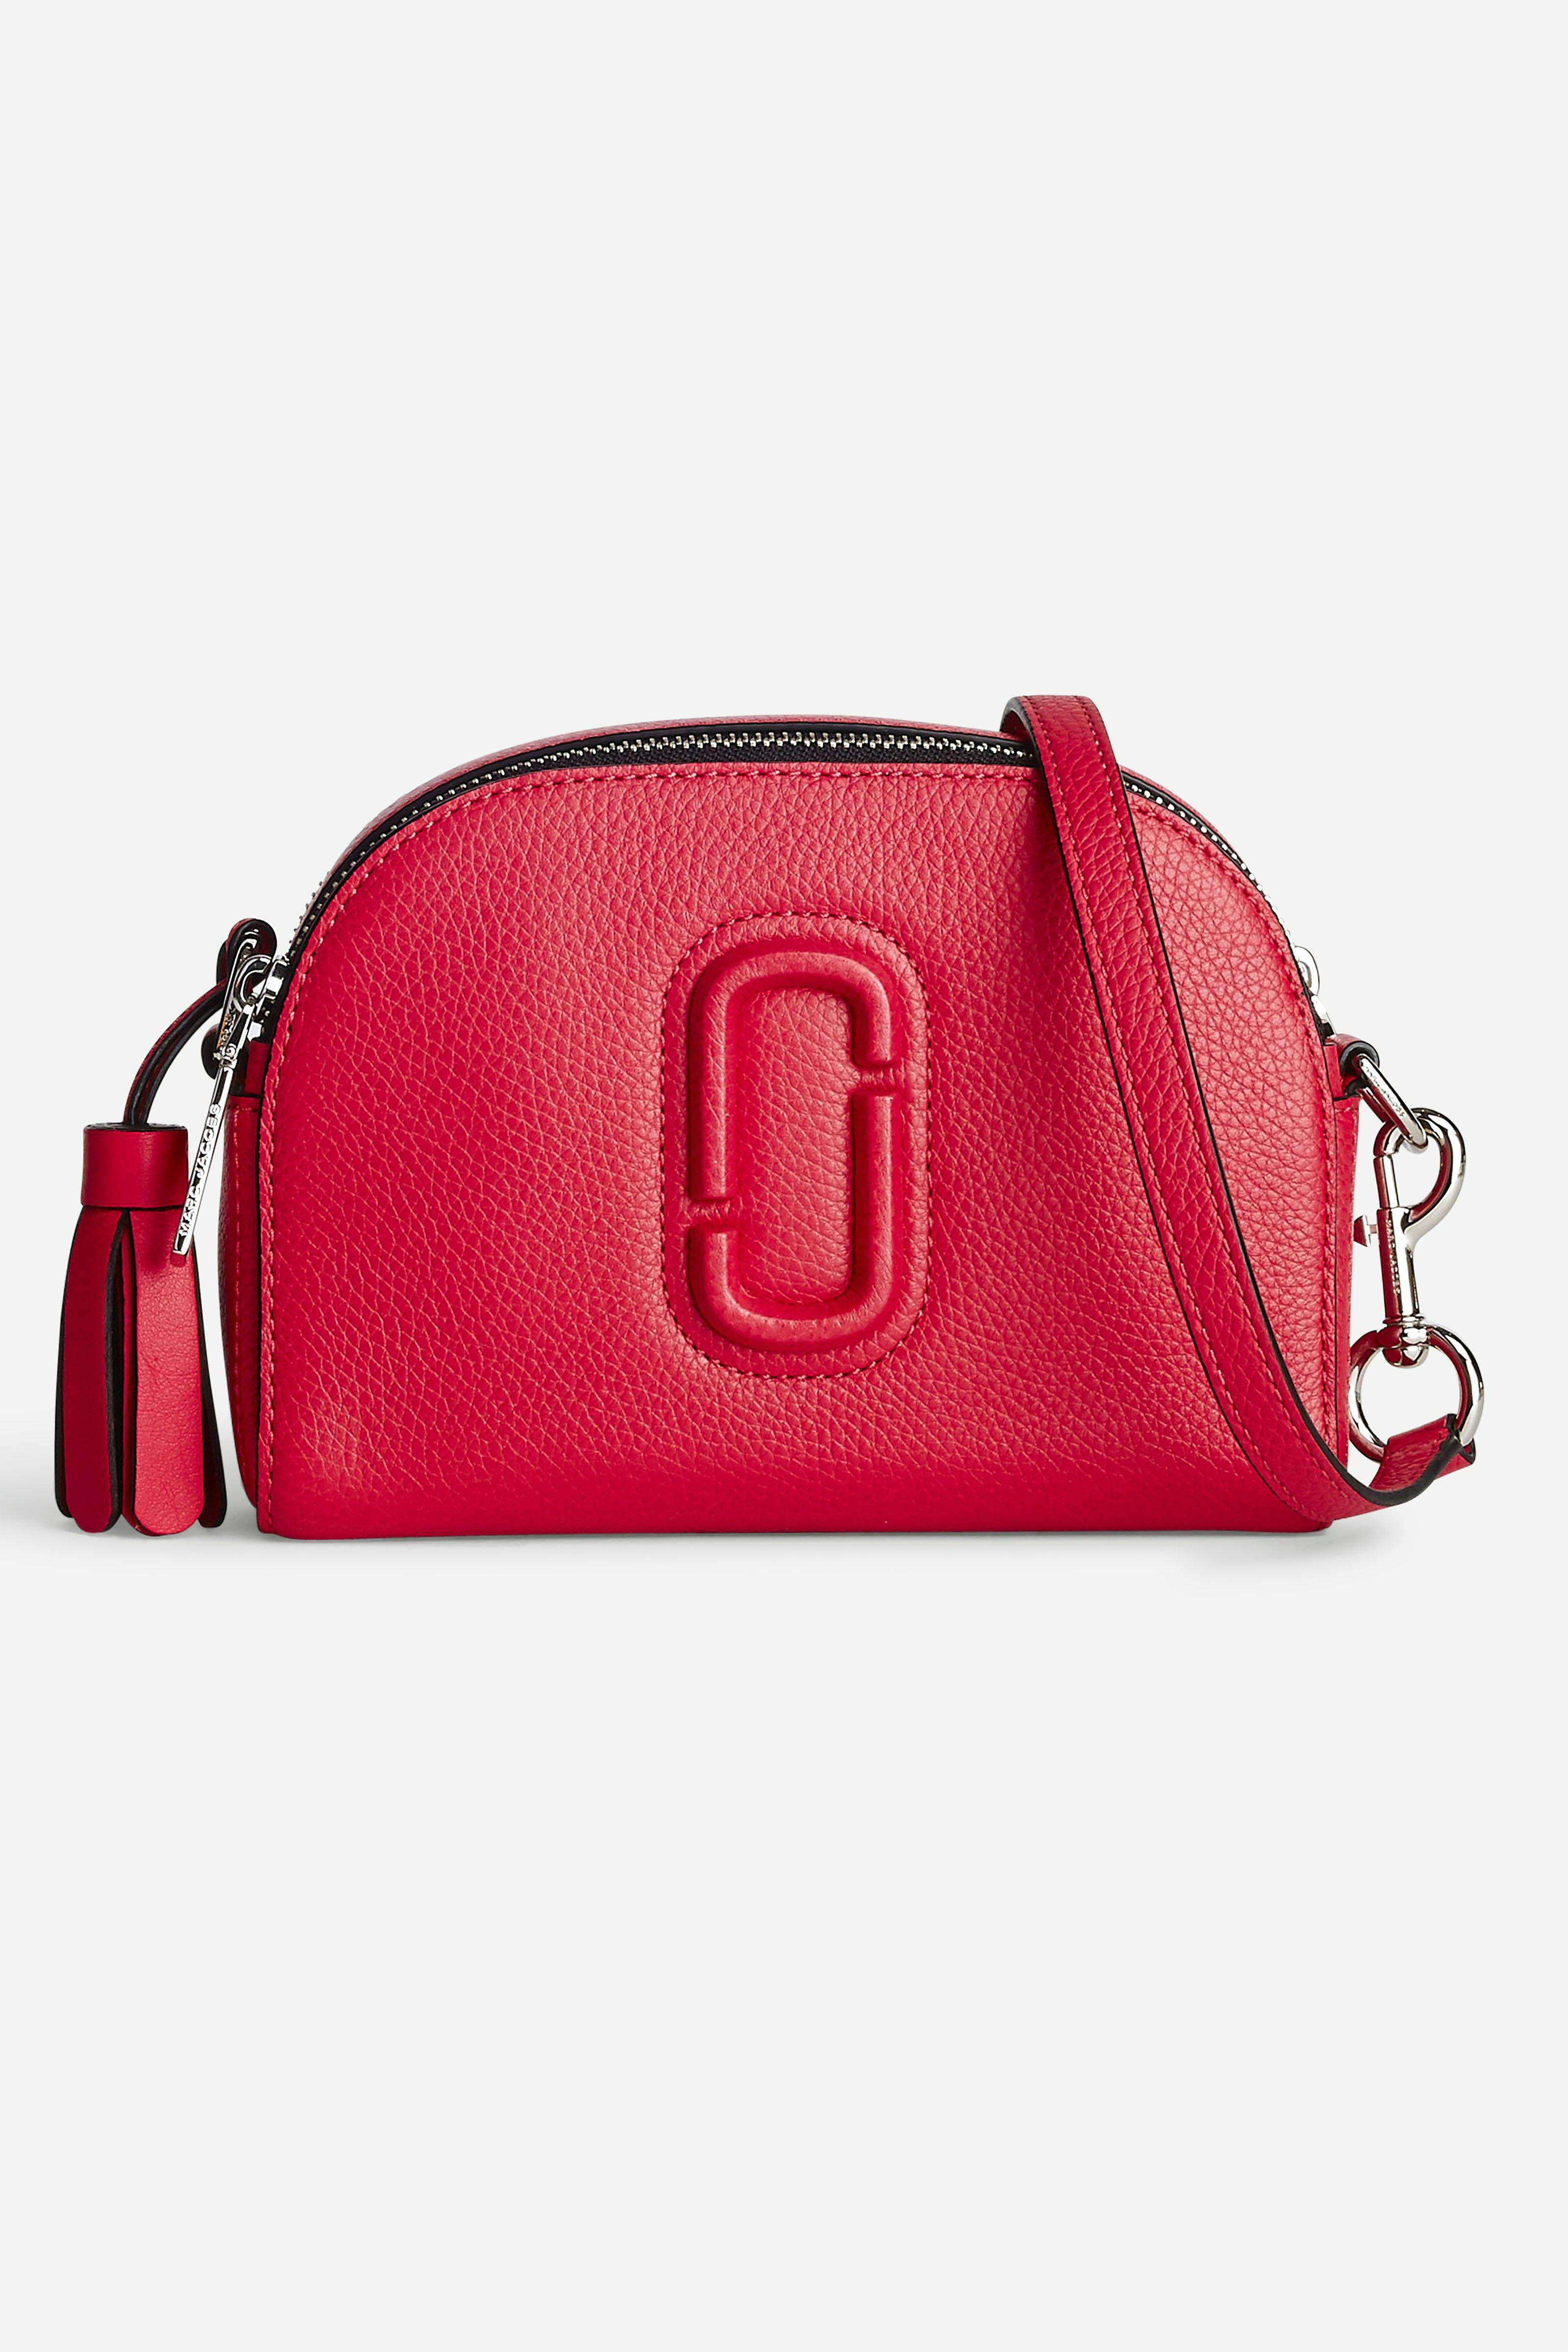 Marc Jacobs 23 - Shutter Small Camera Bag - Pink